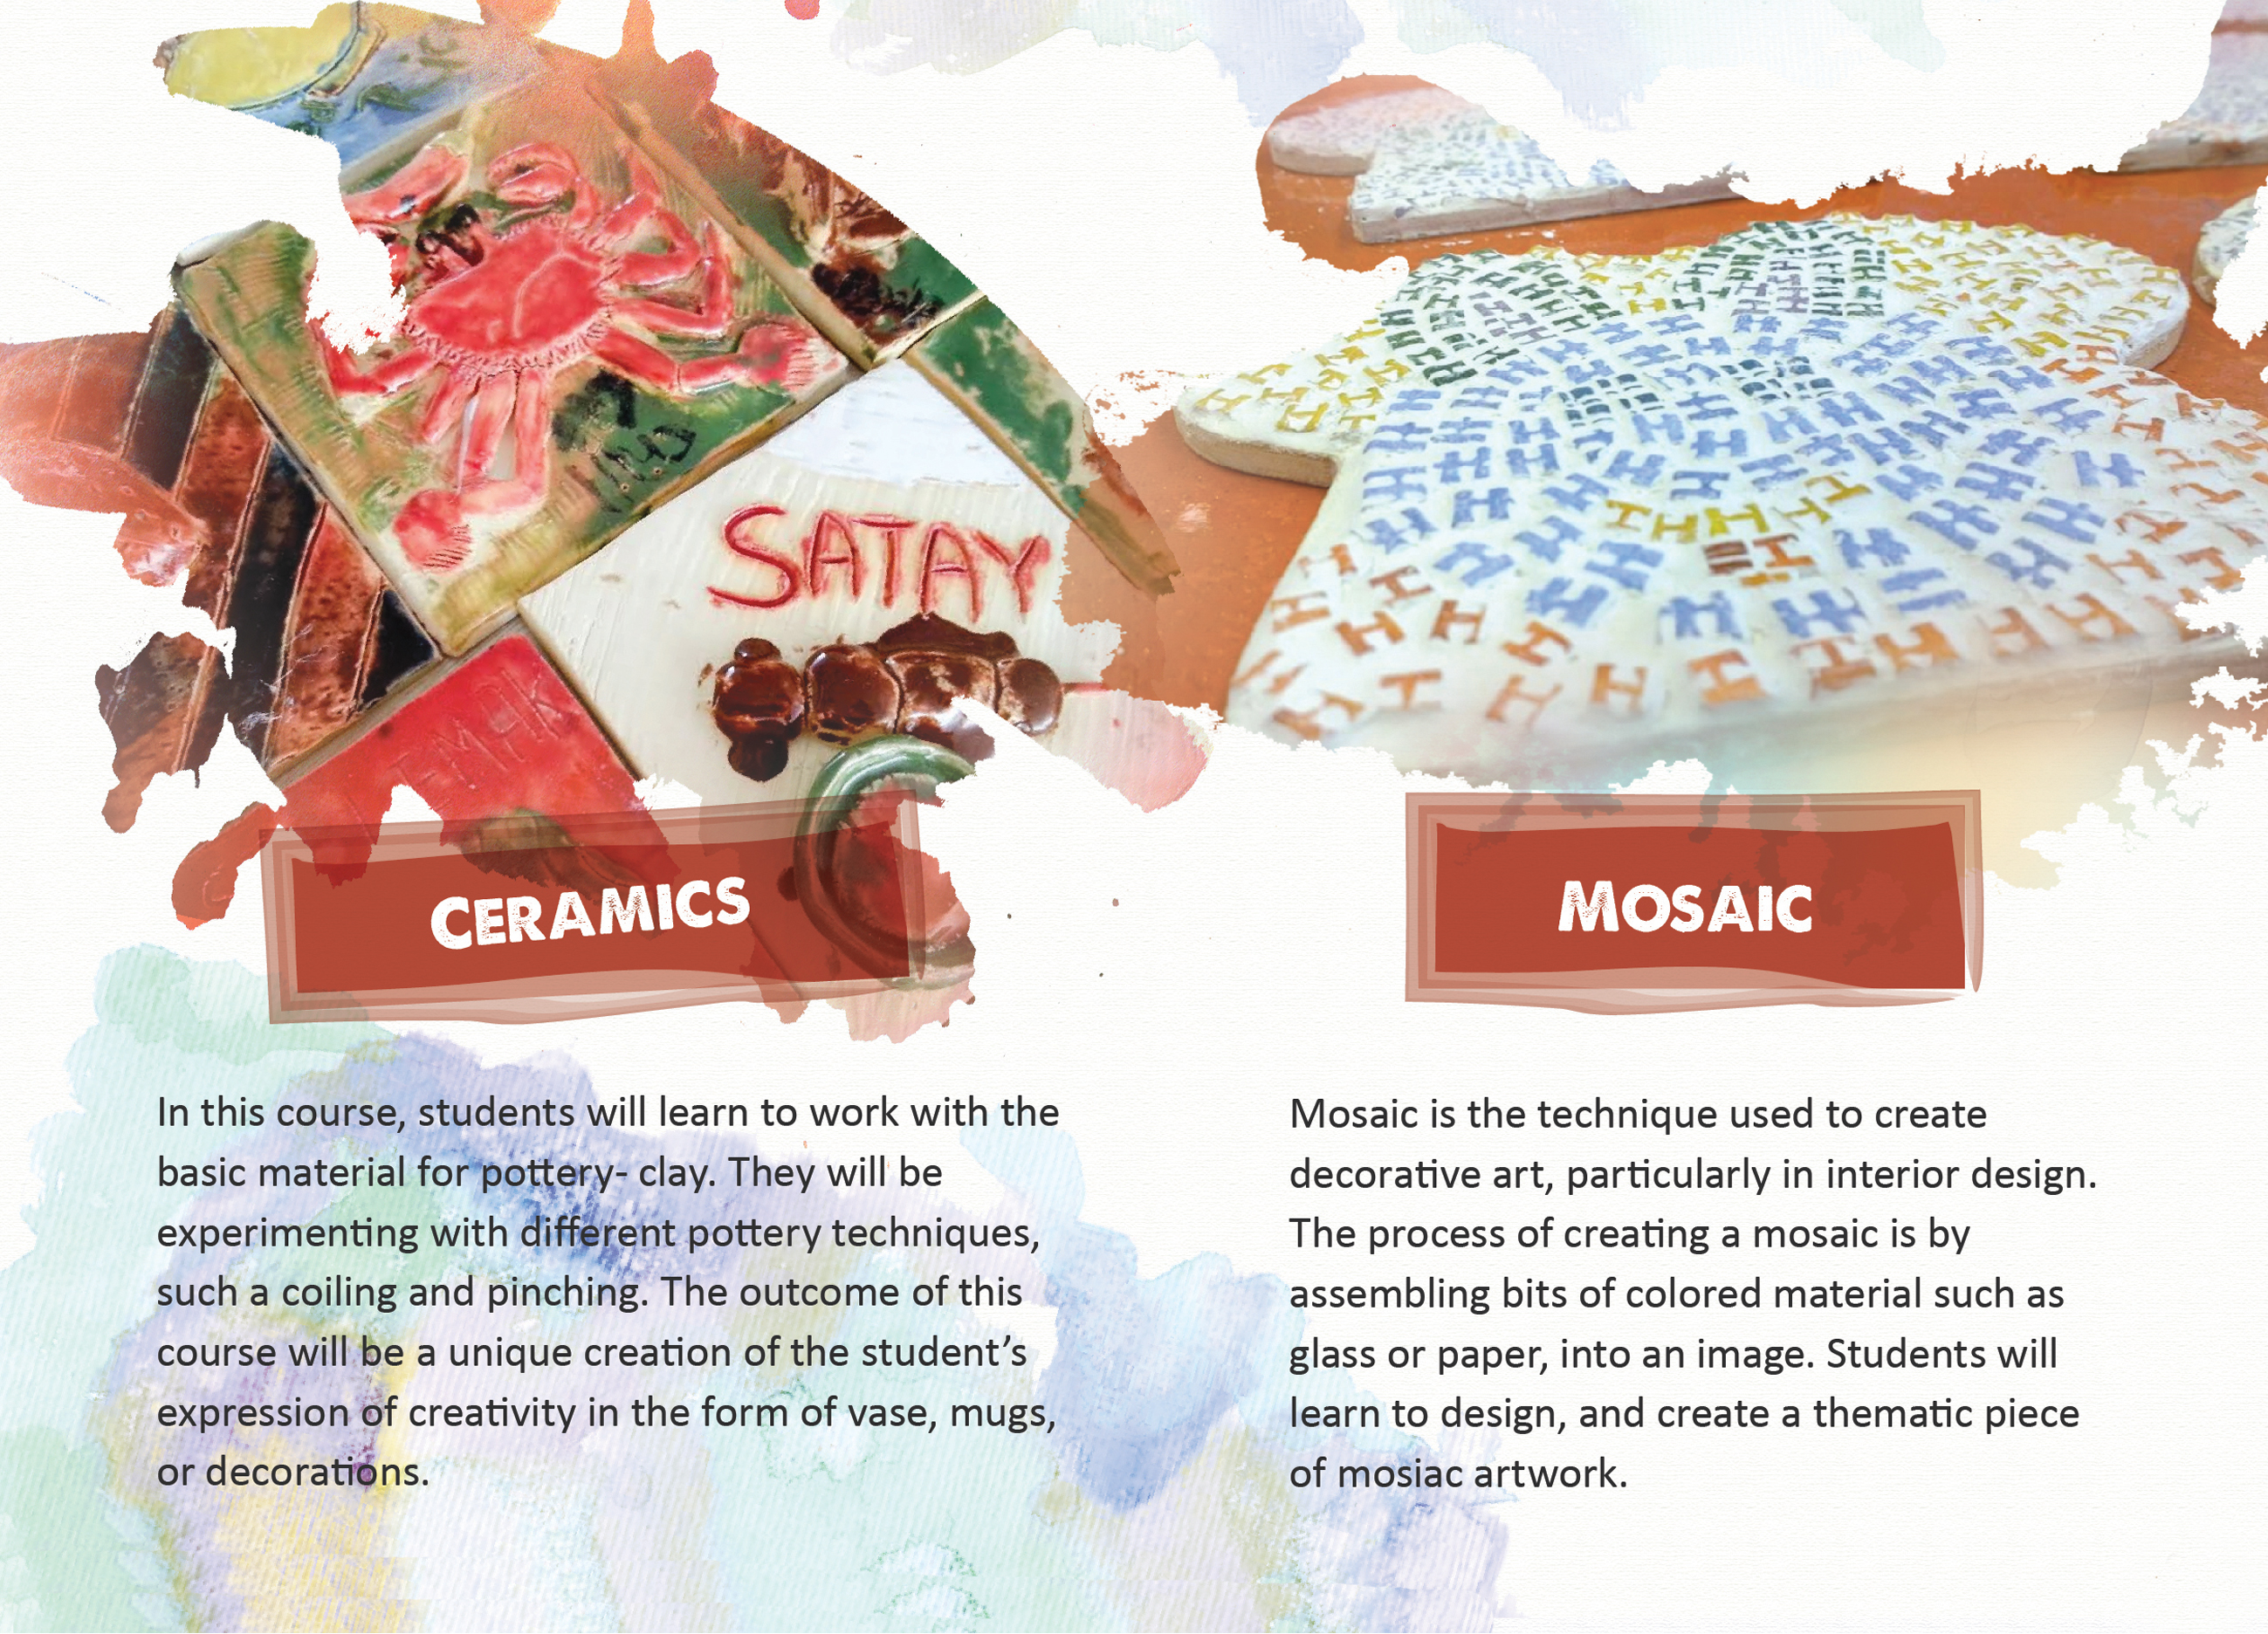 Ceramics and Mosaic